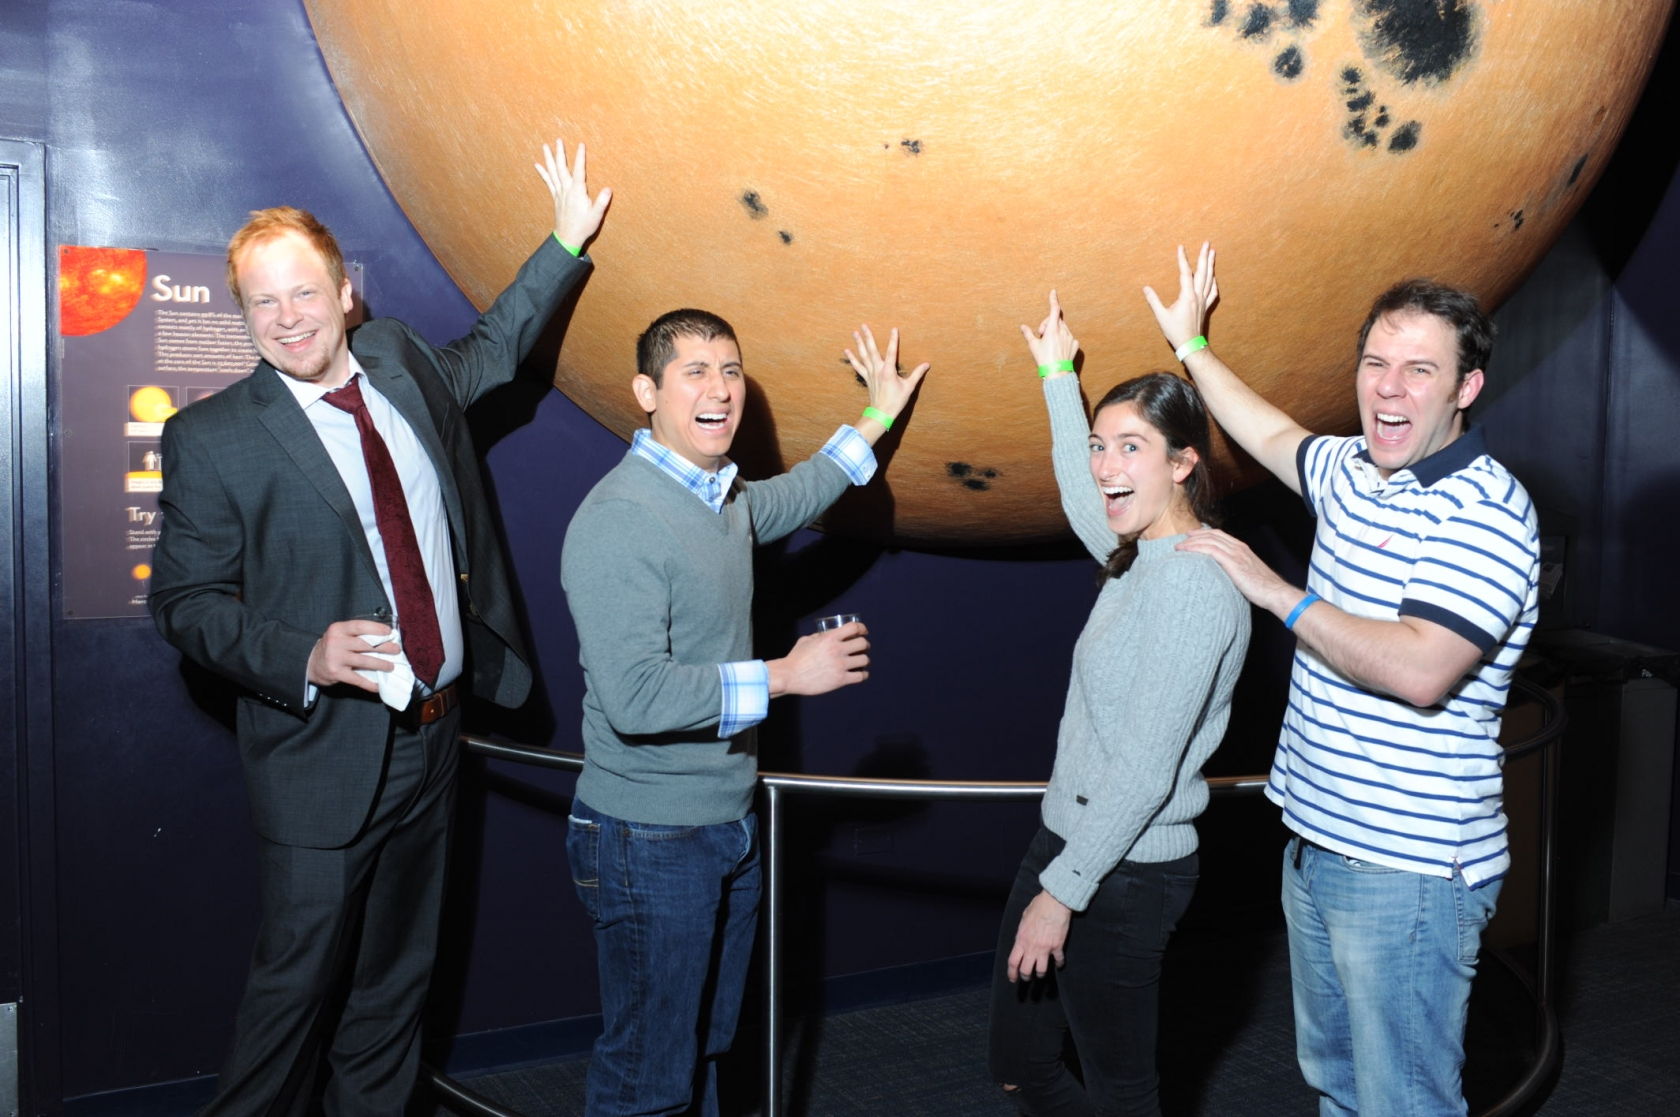 Guests at TEAMHealth touch the Sun at private event hosted at Boston Museum of Science